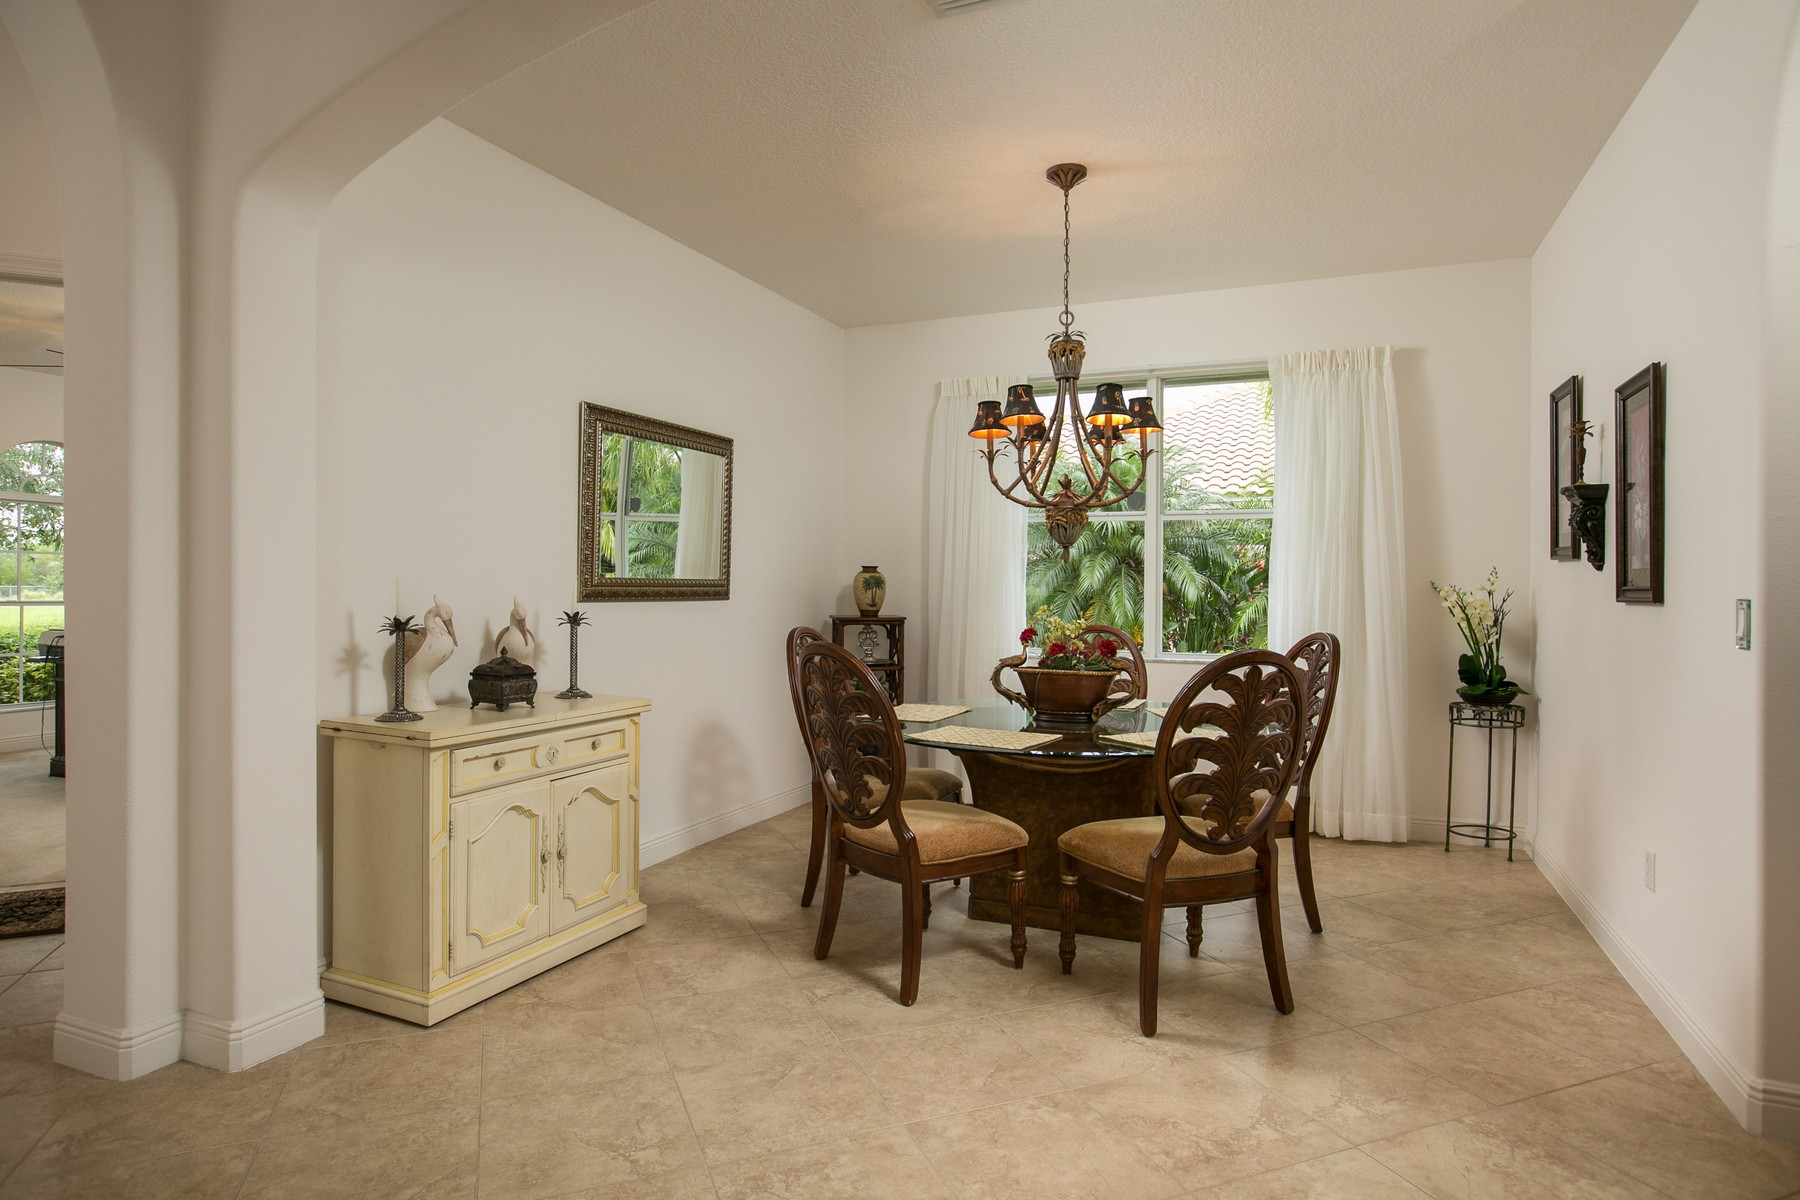 Additional photo for property listing at Spacious Lakefront Home 460 Pittman Avenue Vero Beach, Florida 32968 United States